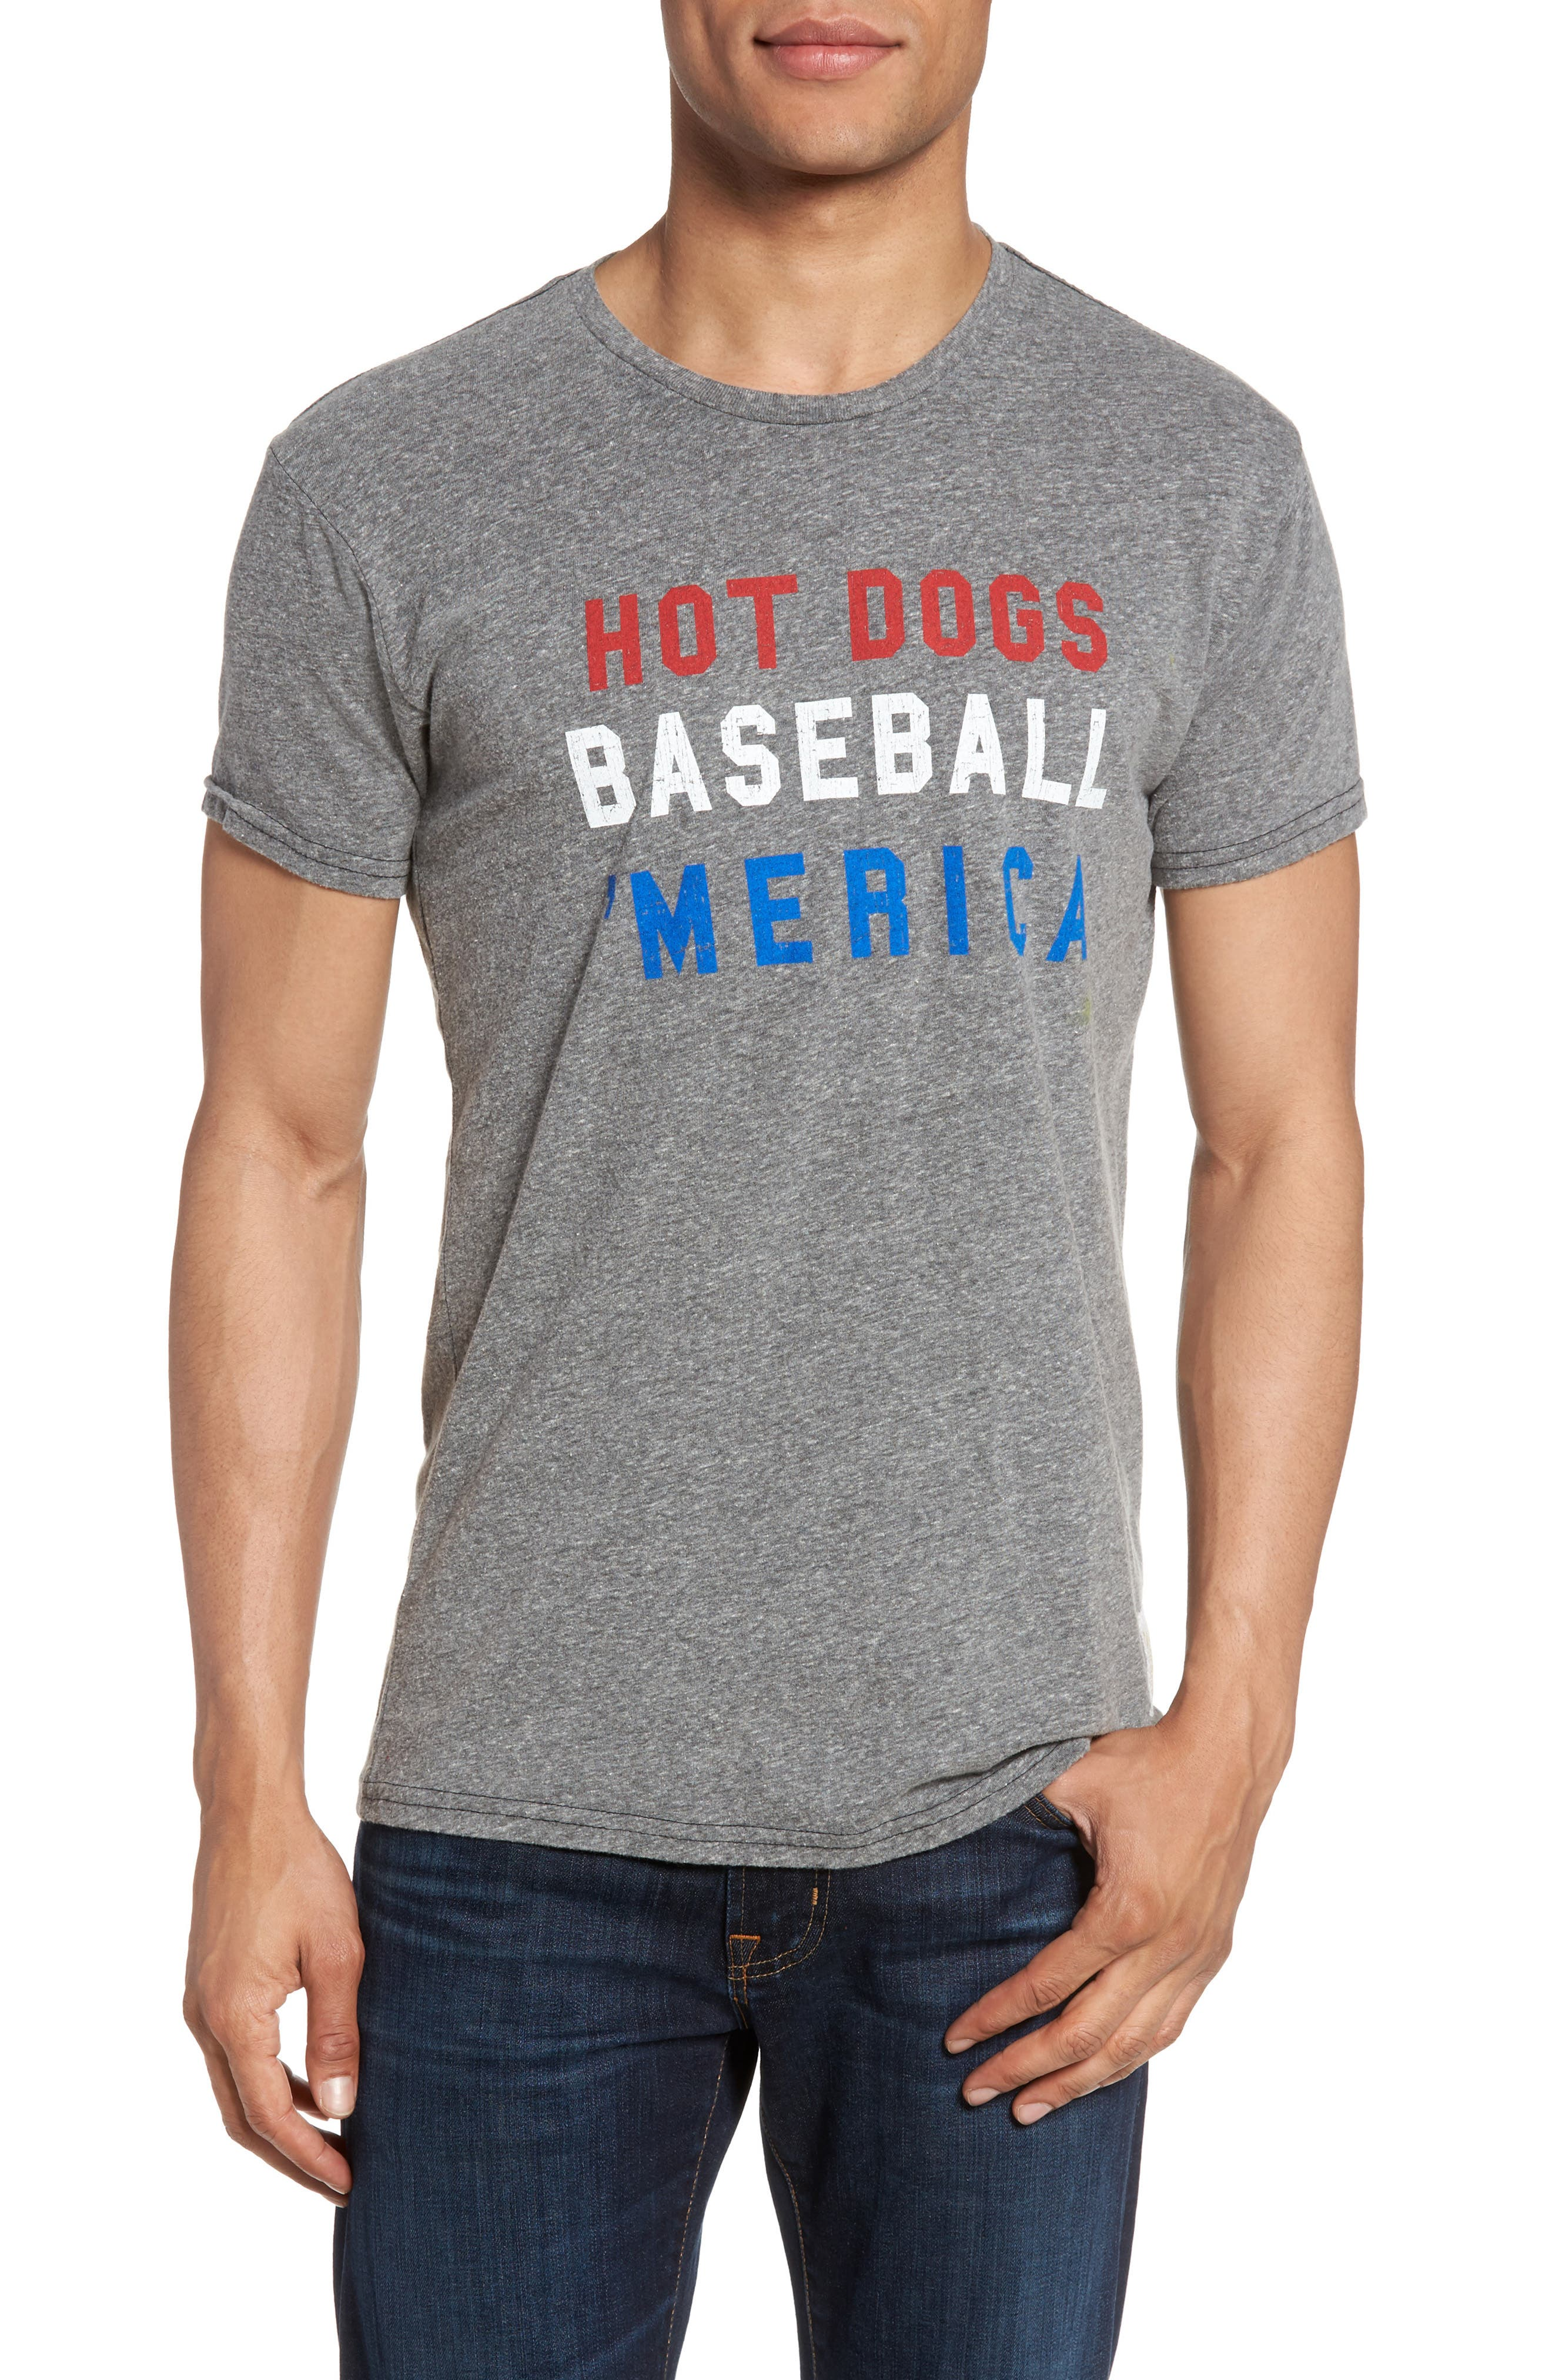 Hot Dogs, Baseball & 'Merica T-Shirt,                         Main,                         color, 020